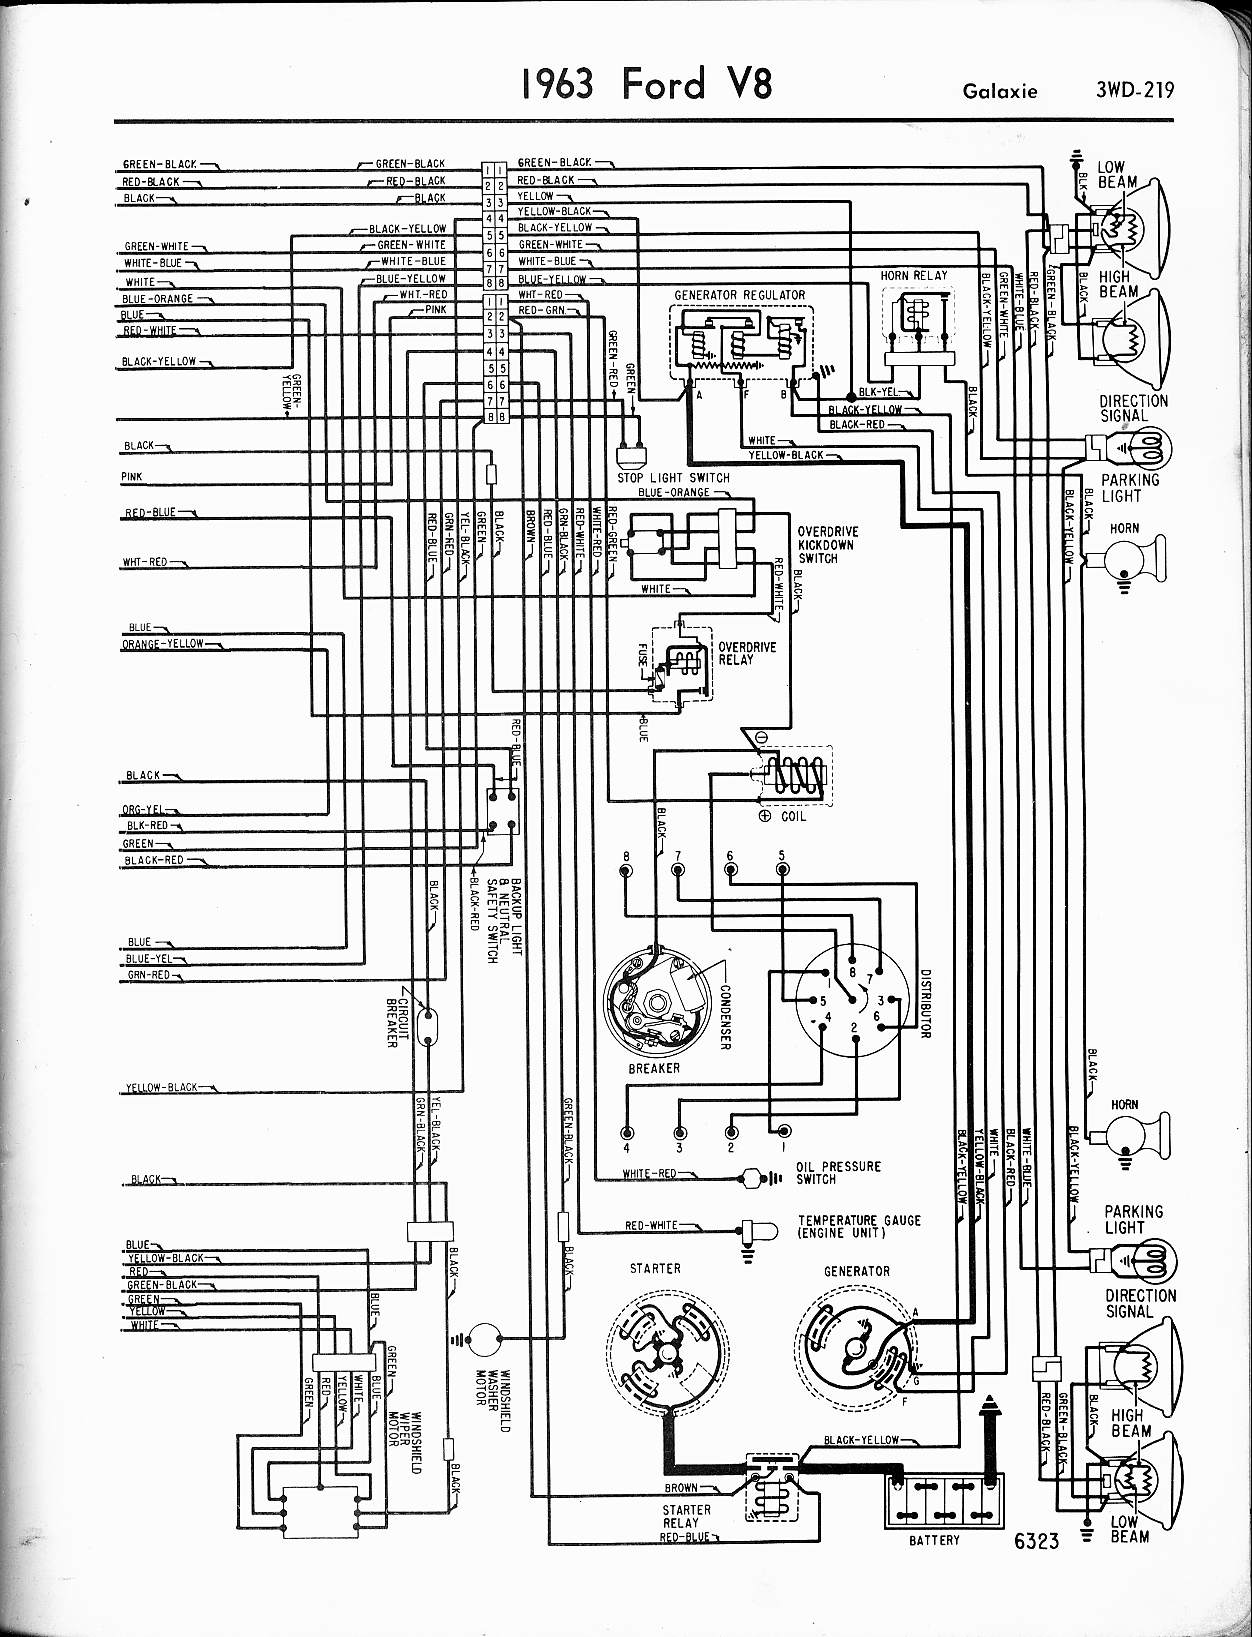 1970 Ford Ltd Wiring Diagram Diy Diagrams F100 57 65 Rh Oldcarmanualproject Com 1964 Fairlane